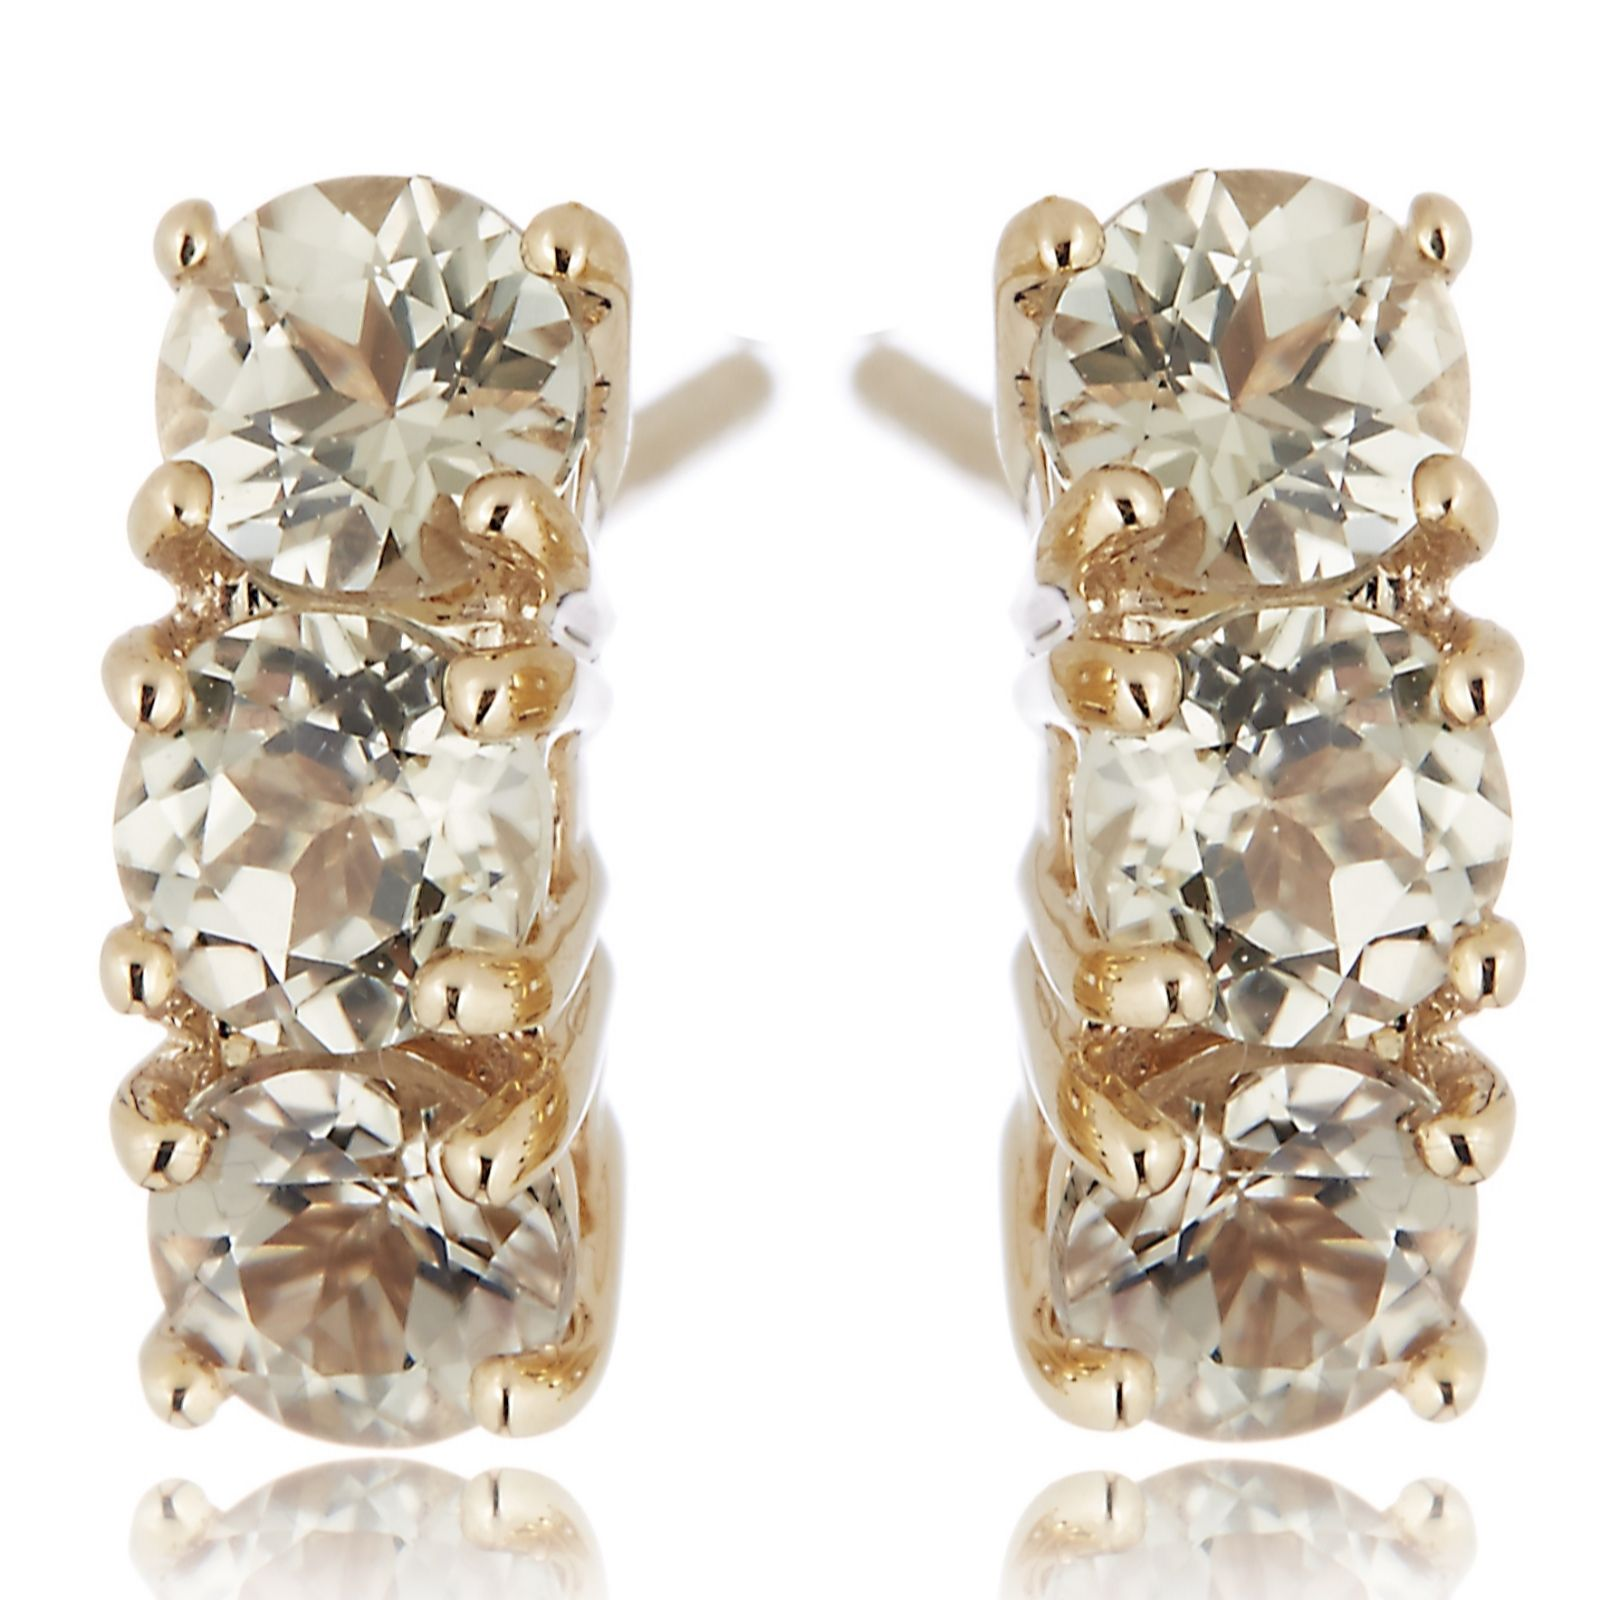 1.5ct Zultanite Trilogy Stud Earrings 9ct Gold